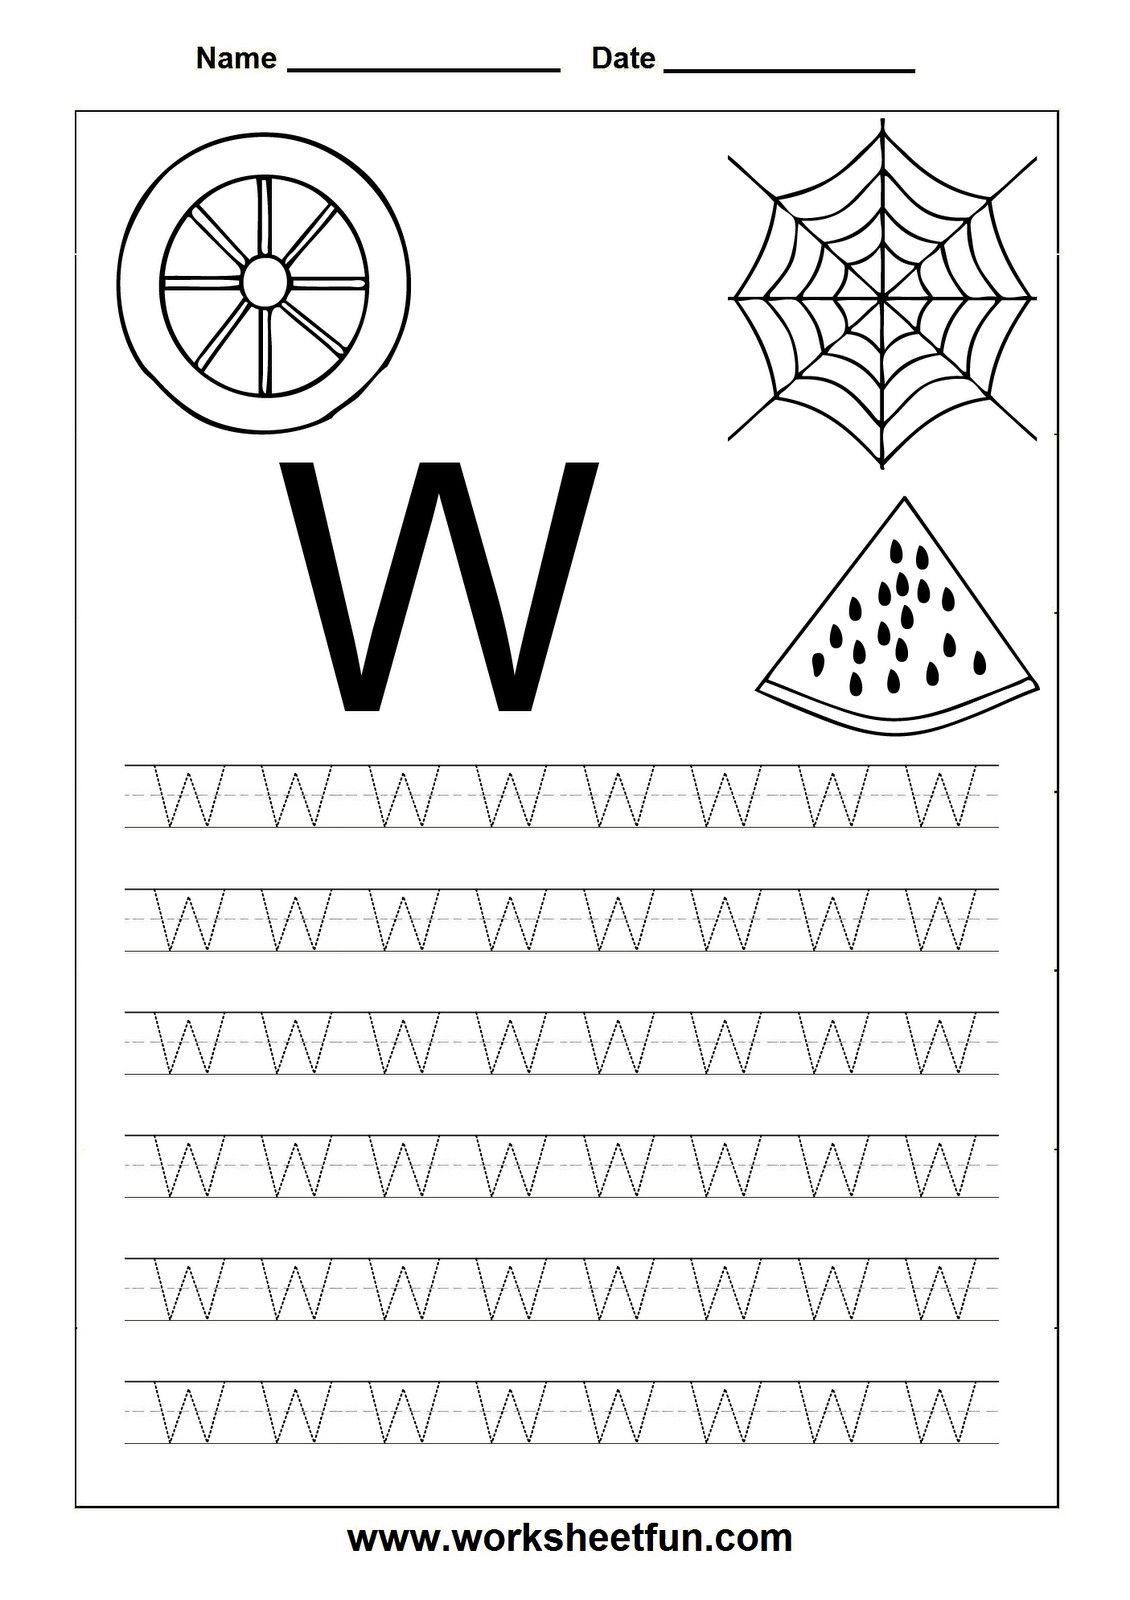 3 Trace Your Name Worksheet Printable Free Printable Worksheets Letter Tracing Wor In 2020 Alphabet Tracing Worksheets Tracing Worksheets Alphabet Worksheets Preschool